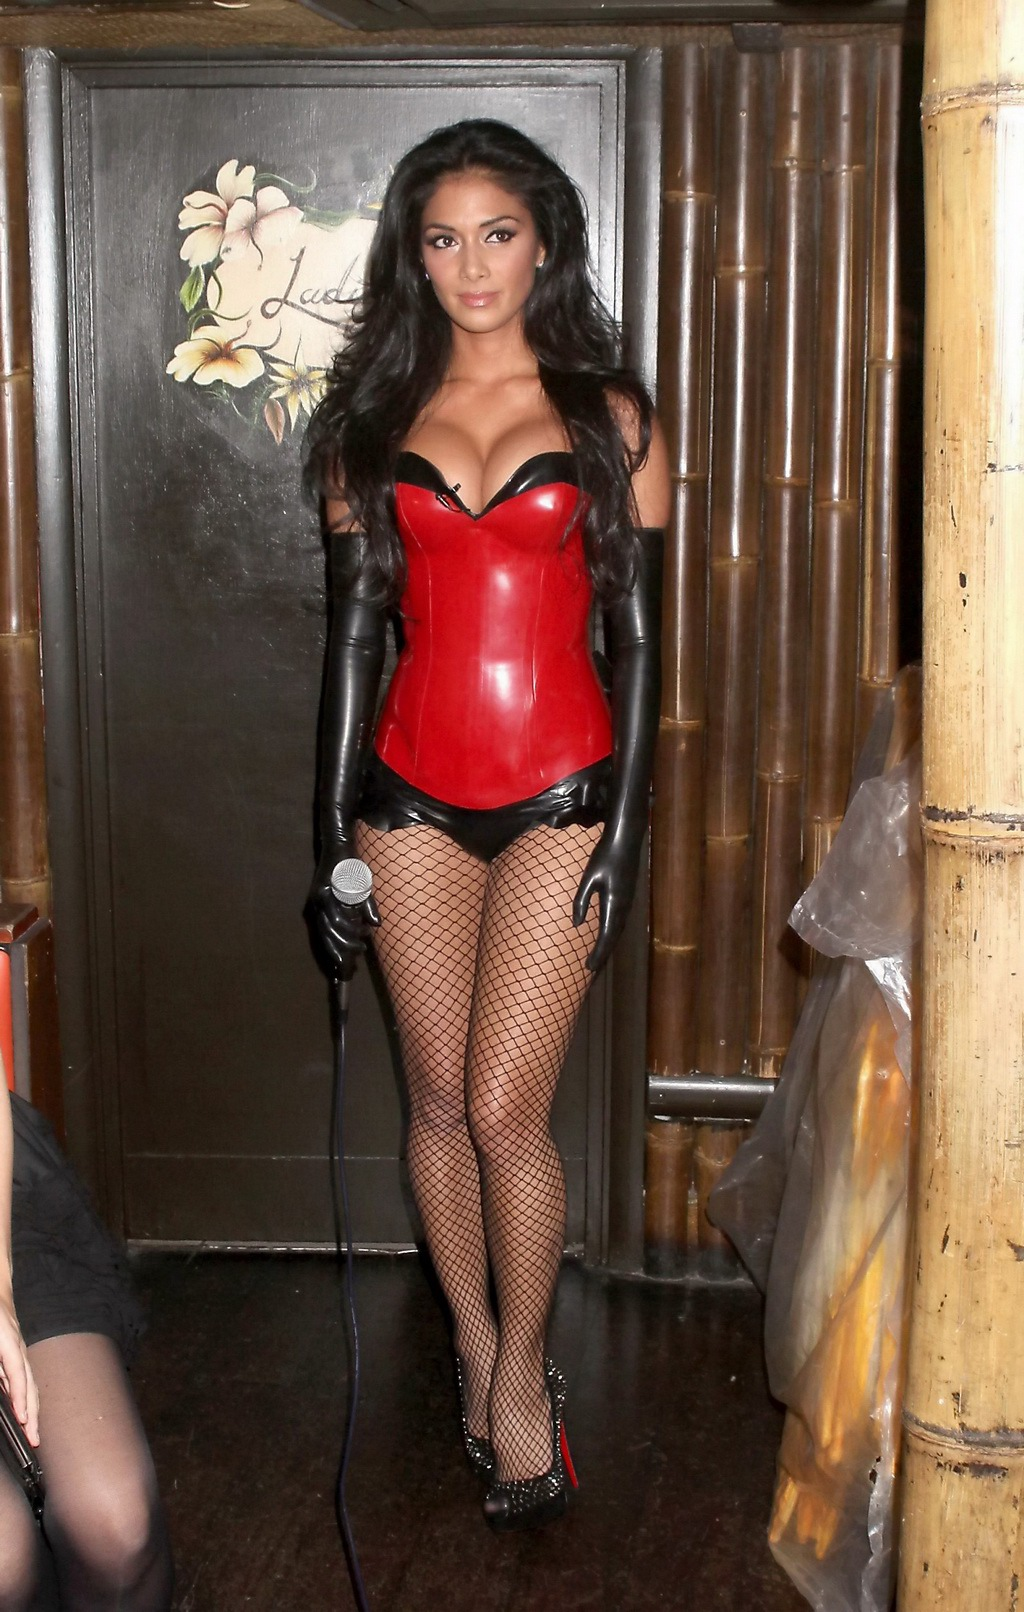 Nghe recommend Mädchen in latex